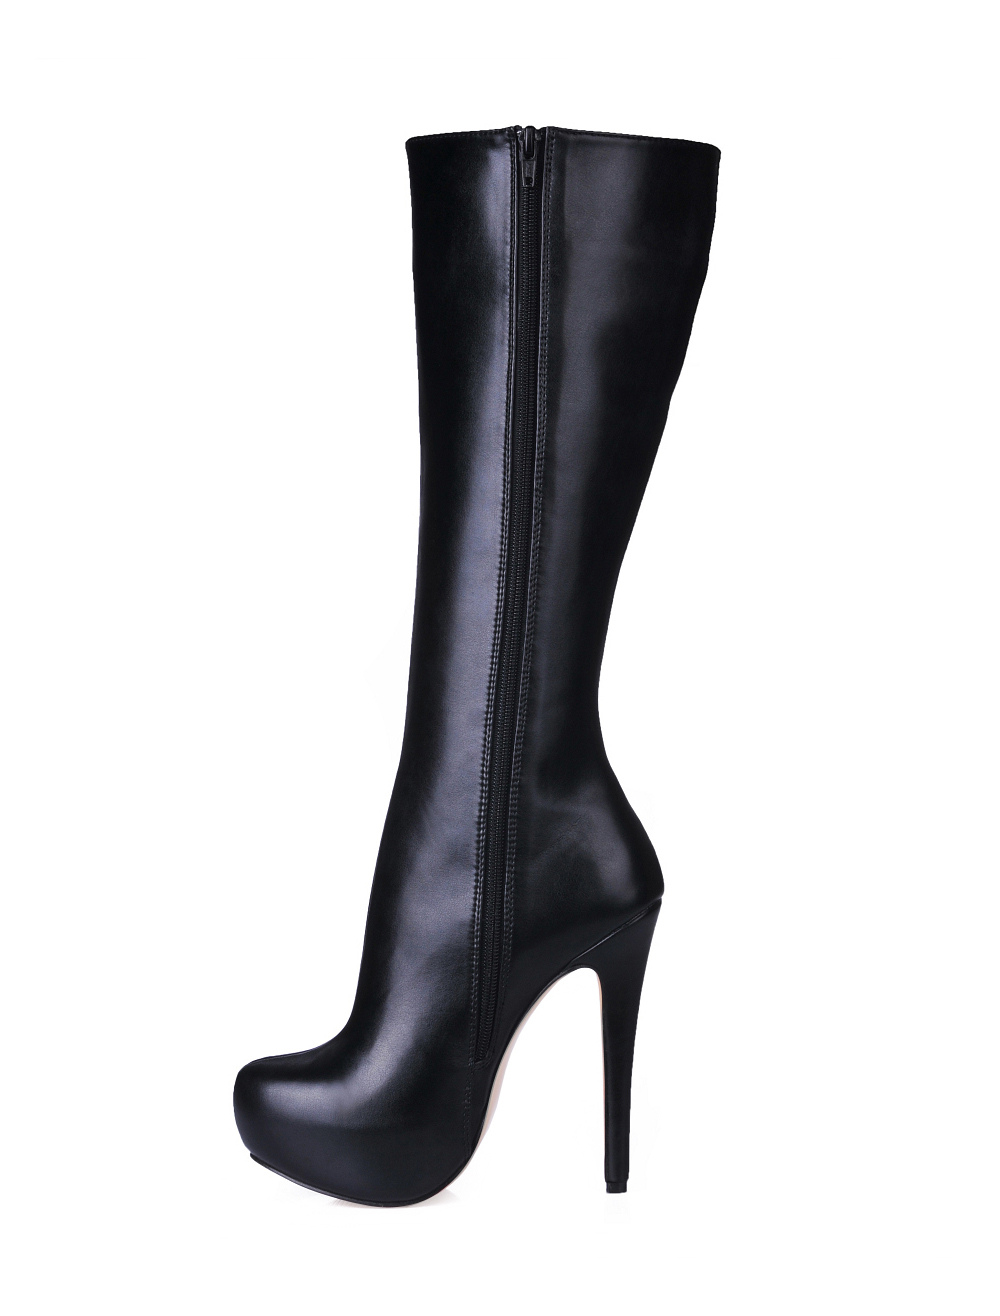 Black High Heel Knee Length Boots